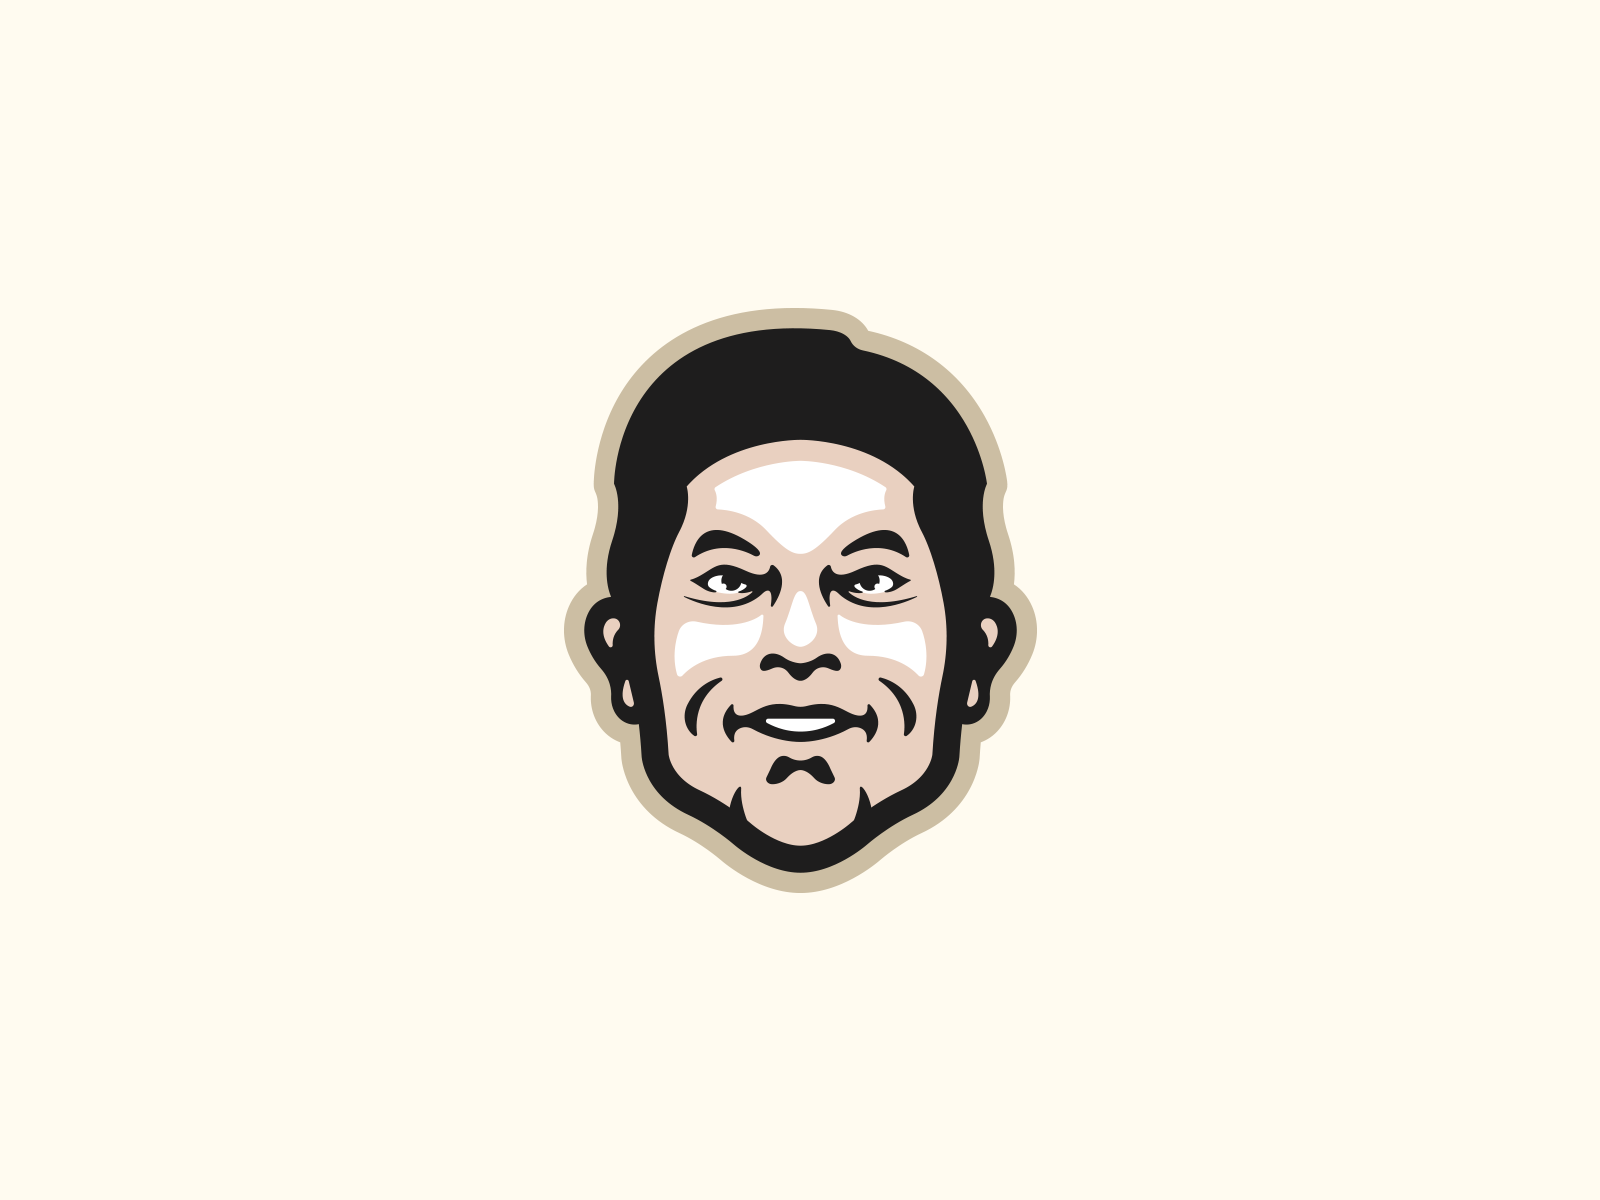 For dribbble 4